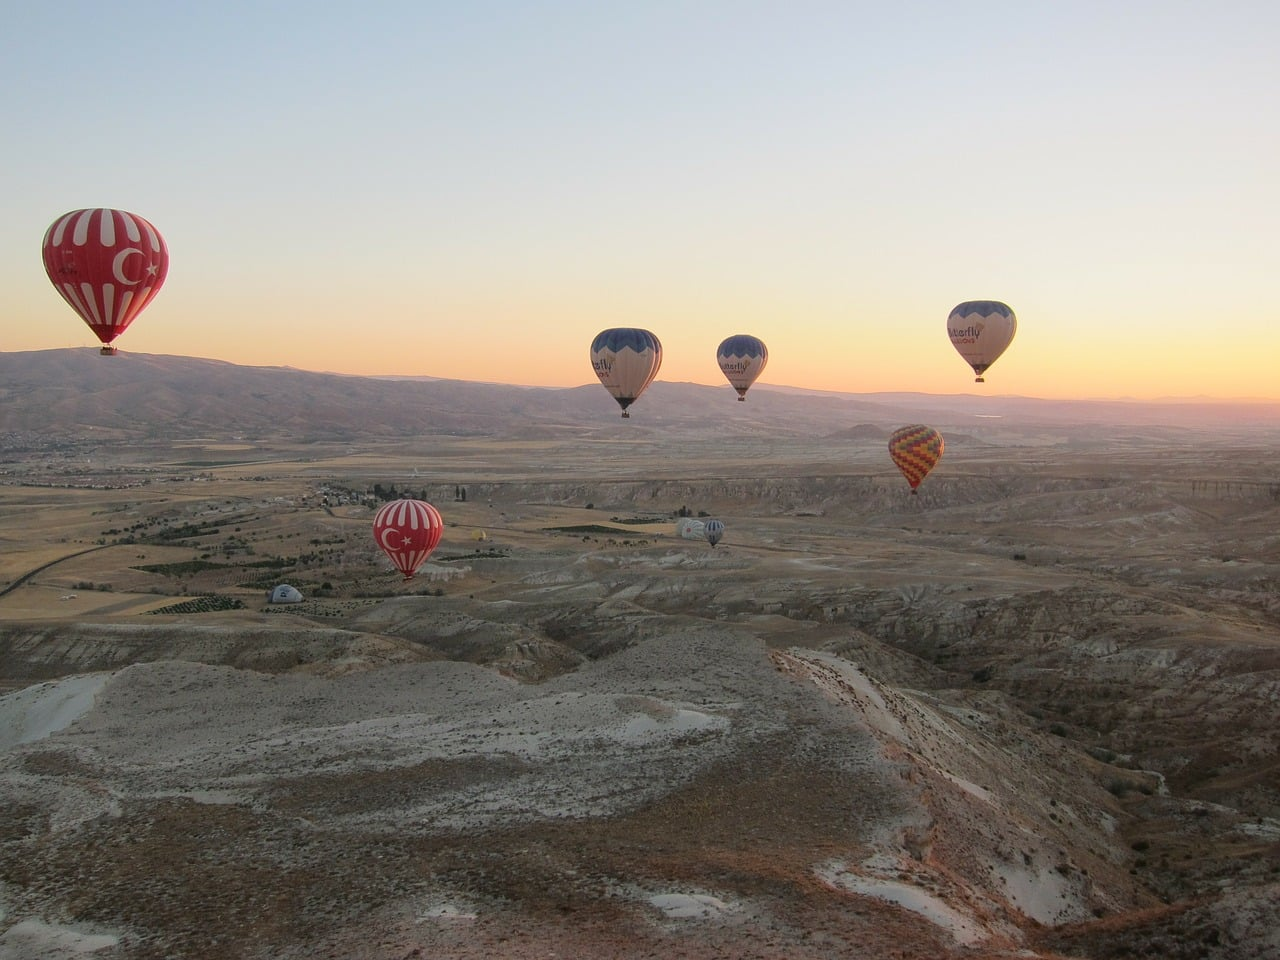 Istanbul Tour to Cappadocia and Cairo - 2 Continents 9